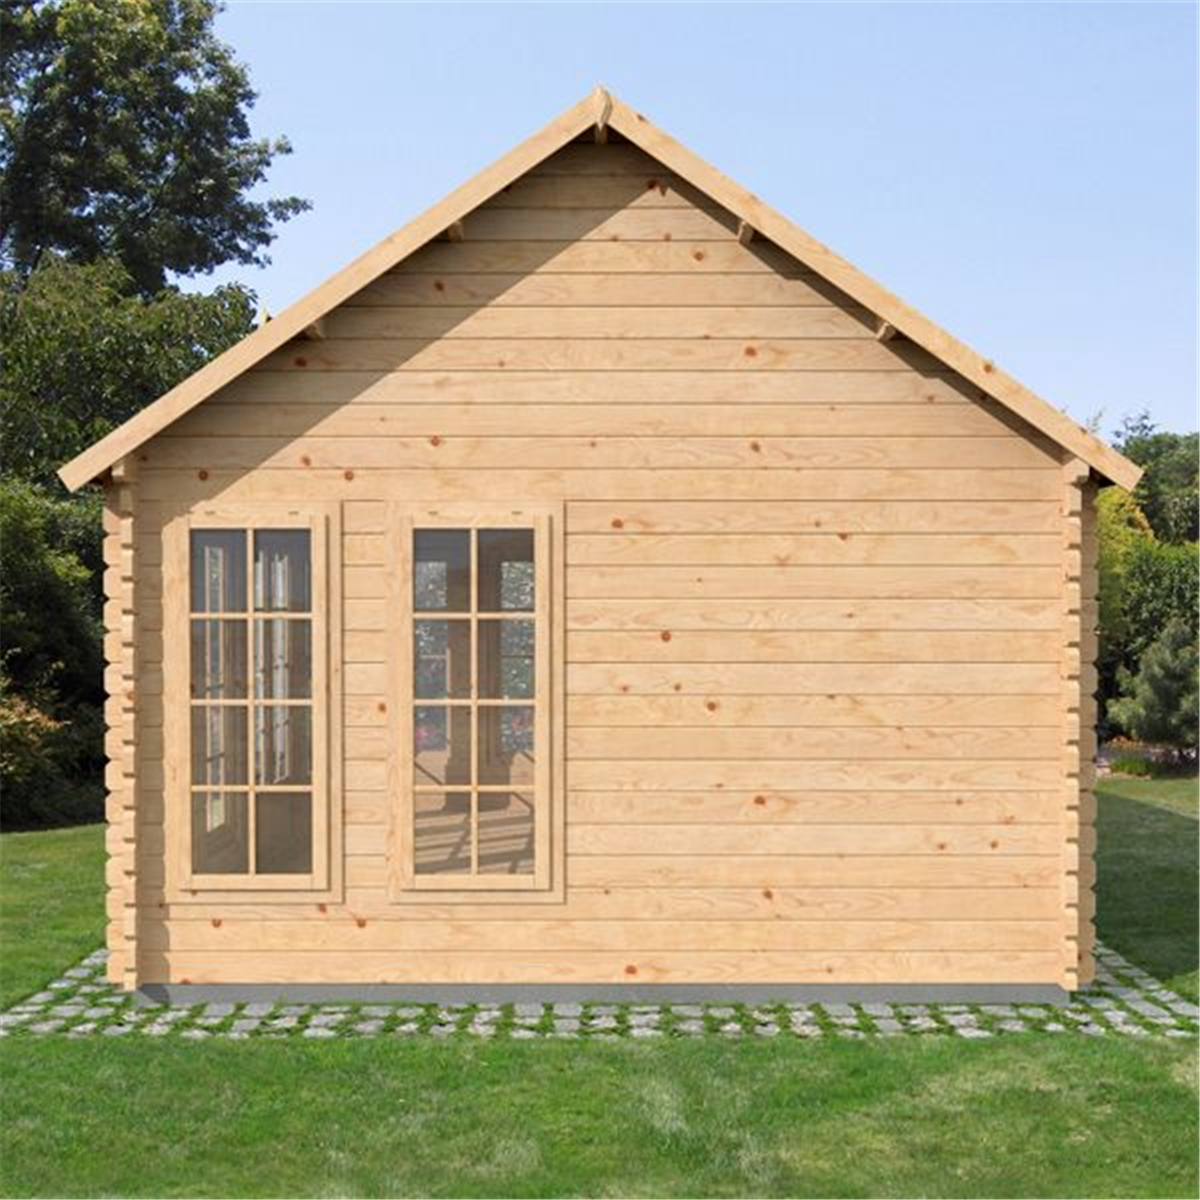 Superb img of Clock House Log Cabin (Double Glazing)   Free Floor & Felt & Safety  with #1D58AE color and 1200x1200 pixels